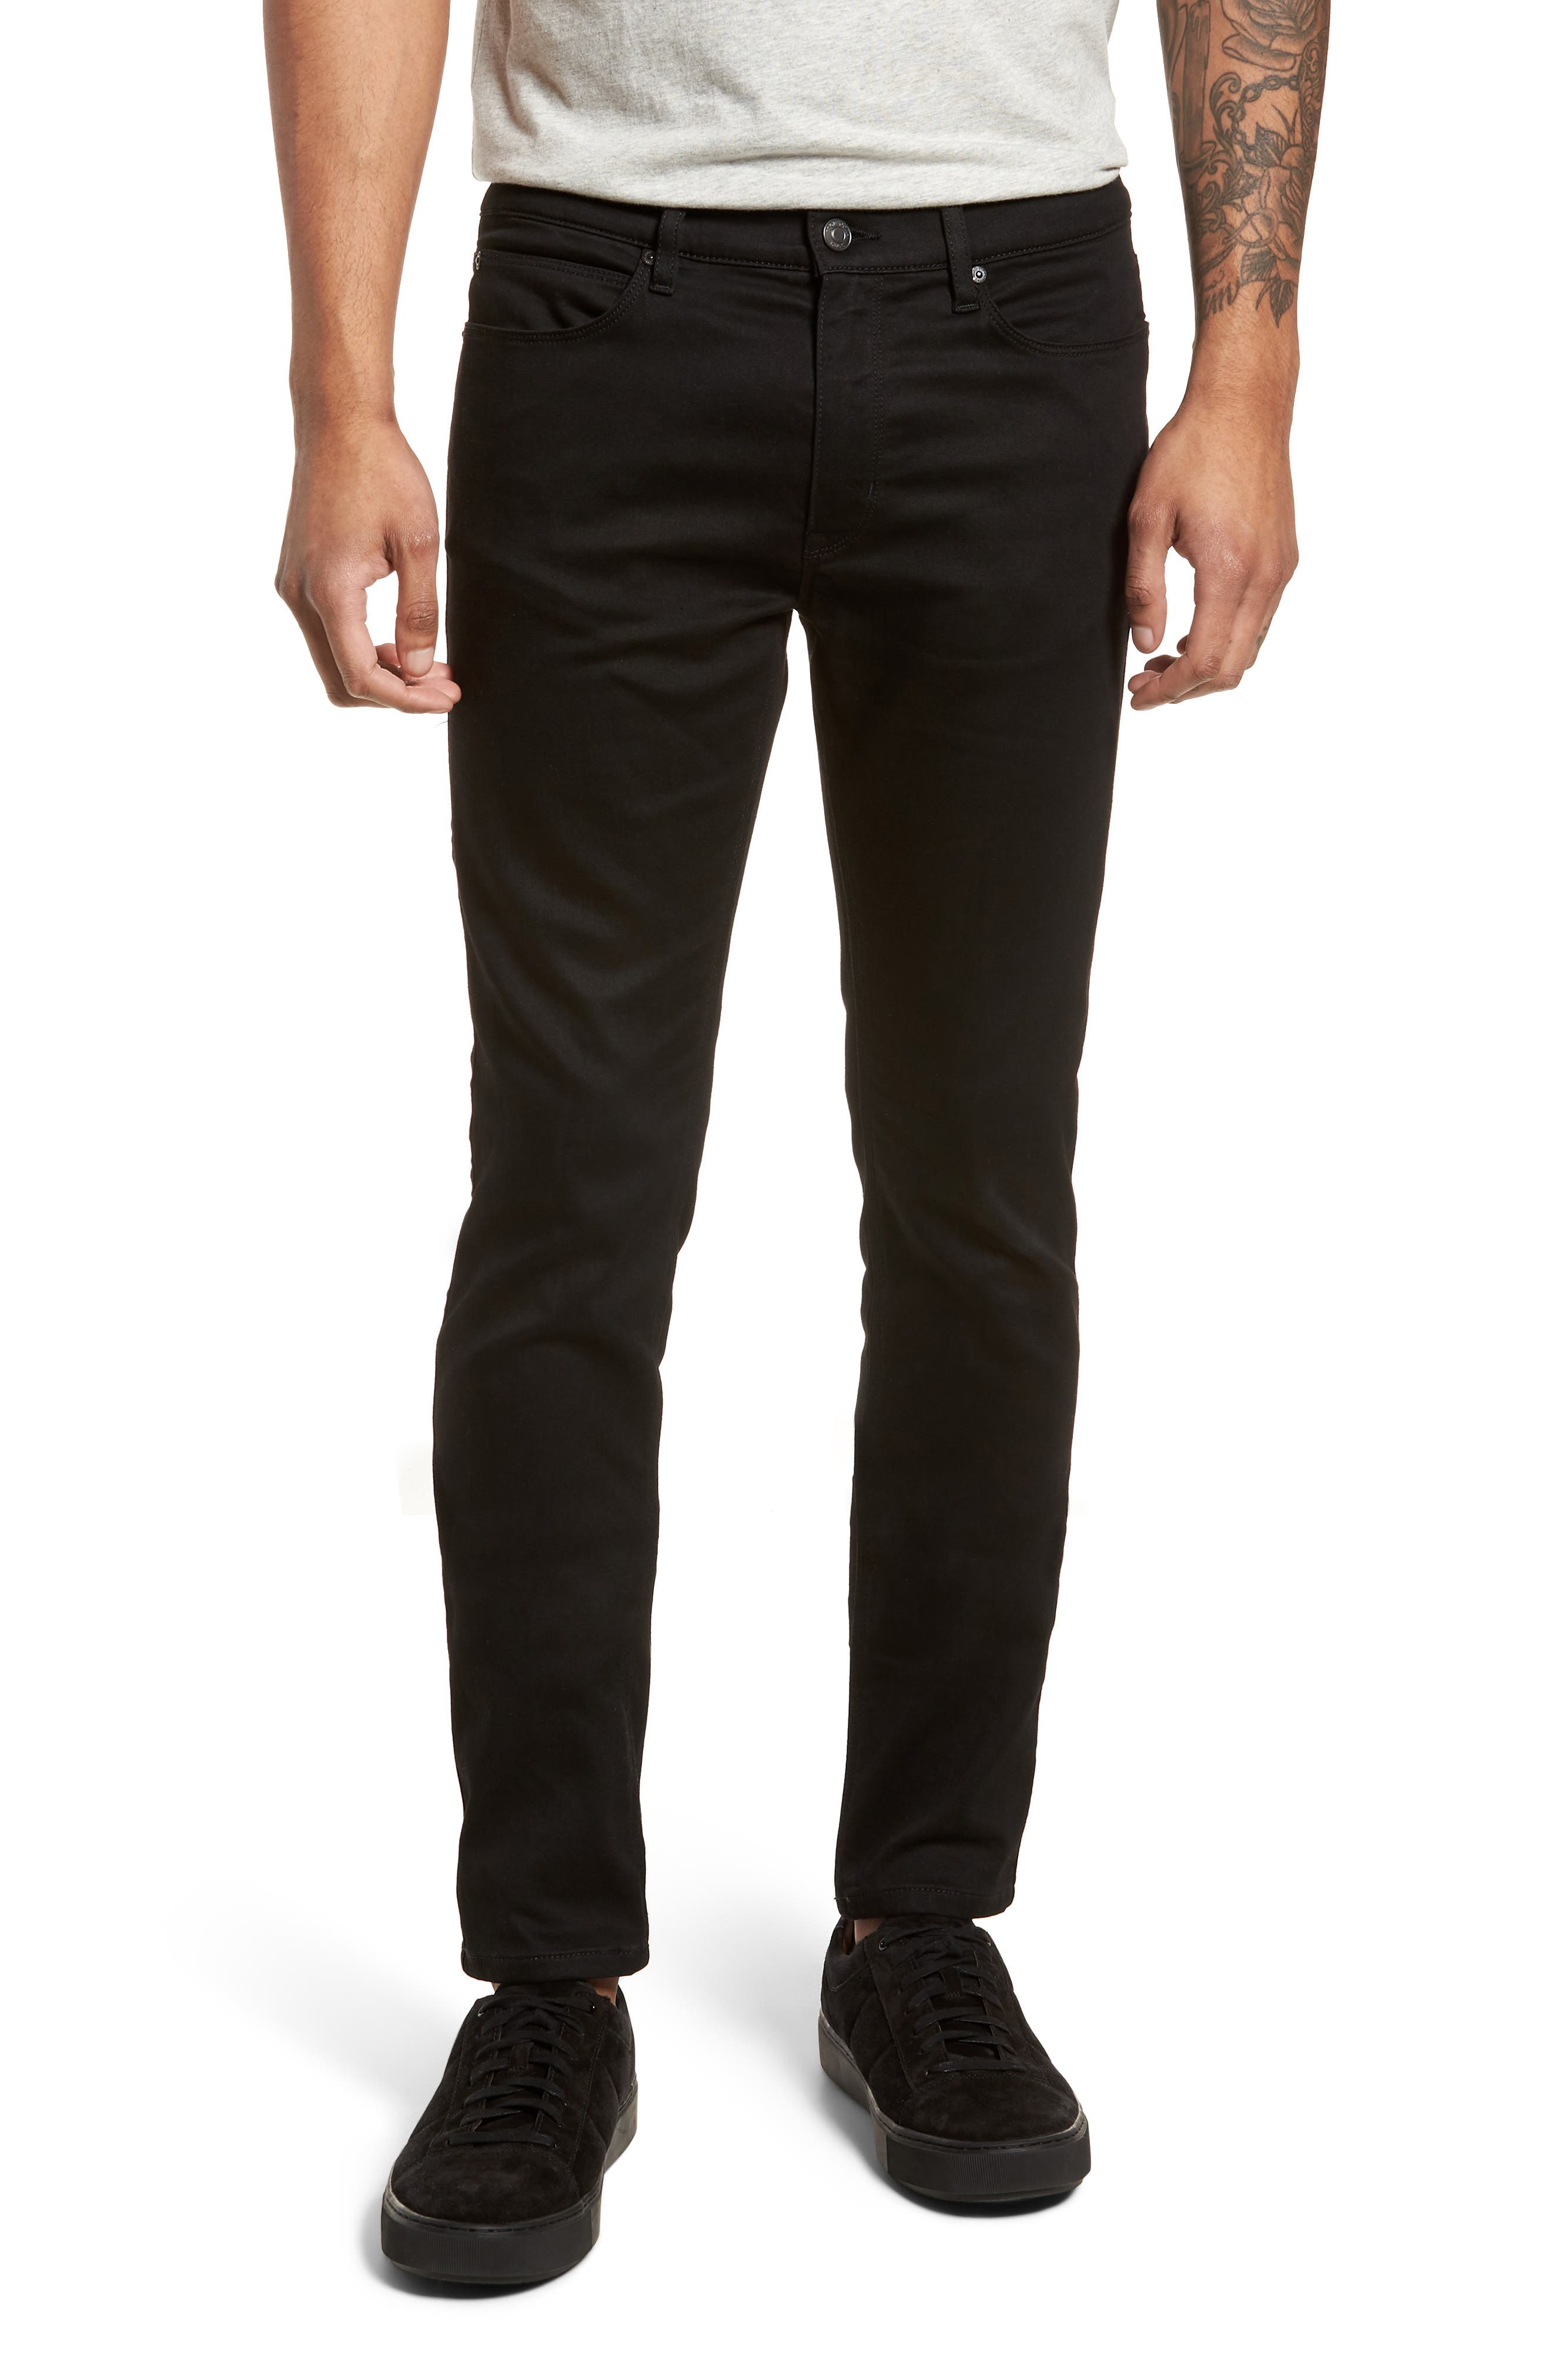 734 Skinny Fit Jeans,                             Main thumbnail 1, color,                             Black